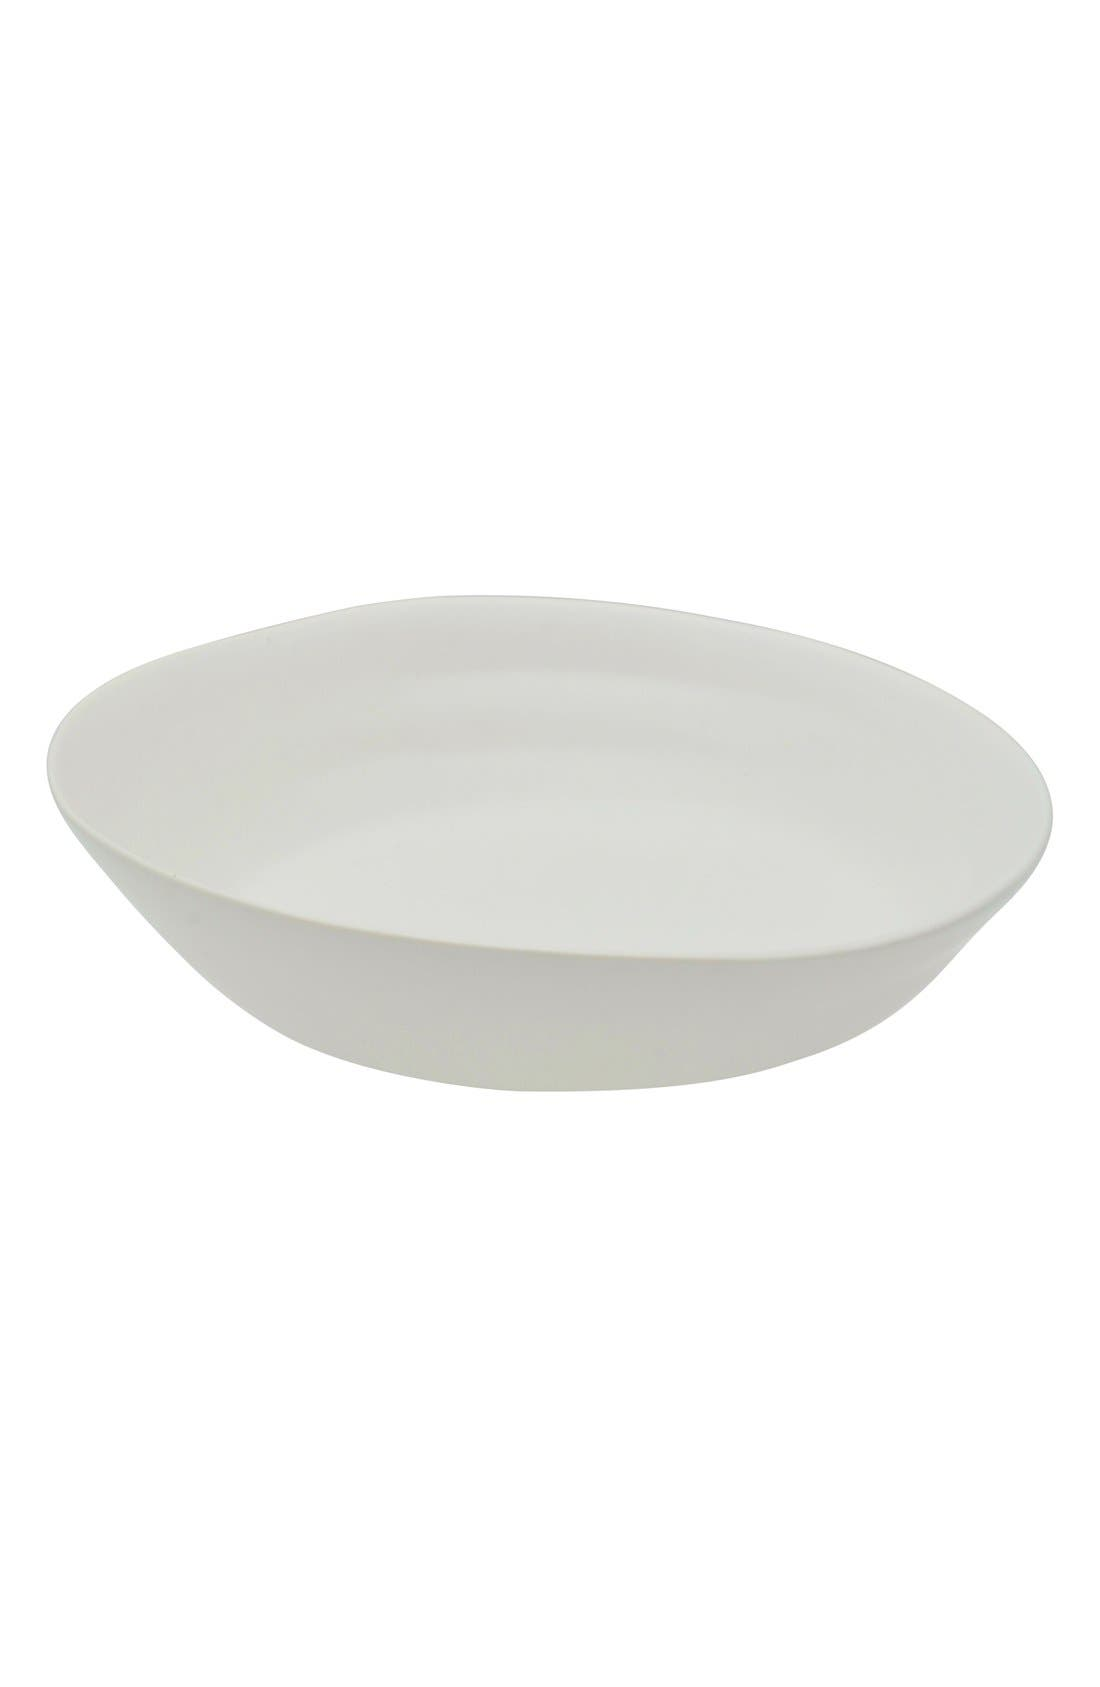 10 Strawberry Street 'Ripple' Small Porcelain Side Dishes (Set of 6)